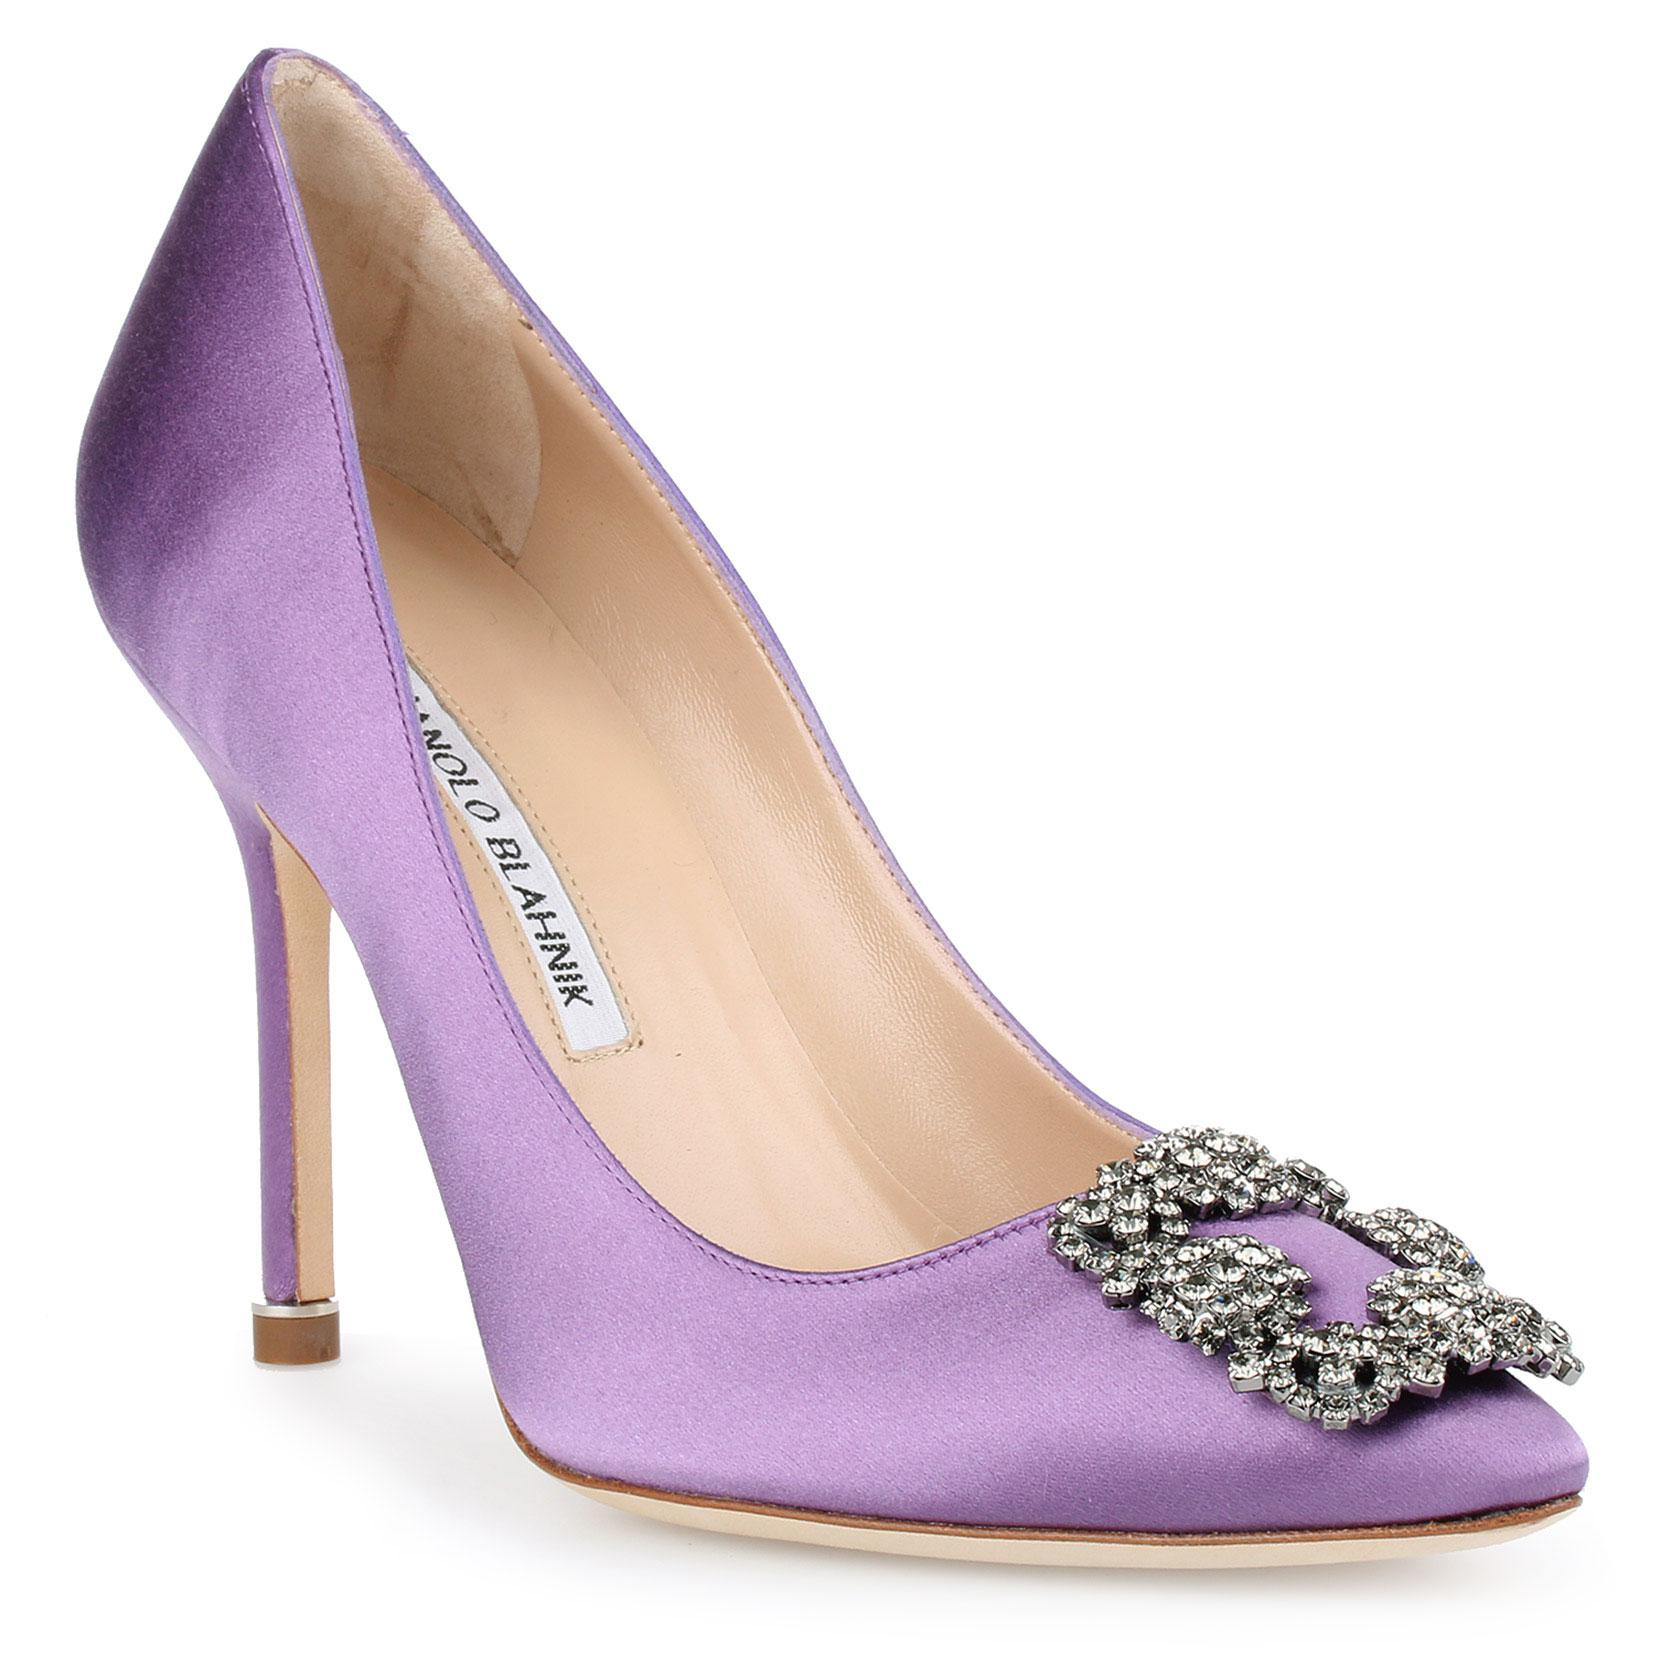 Hangisi 105 violet satin pump Manolo Blahnik Comfortable Cheap Price Yj17bAa